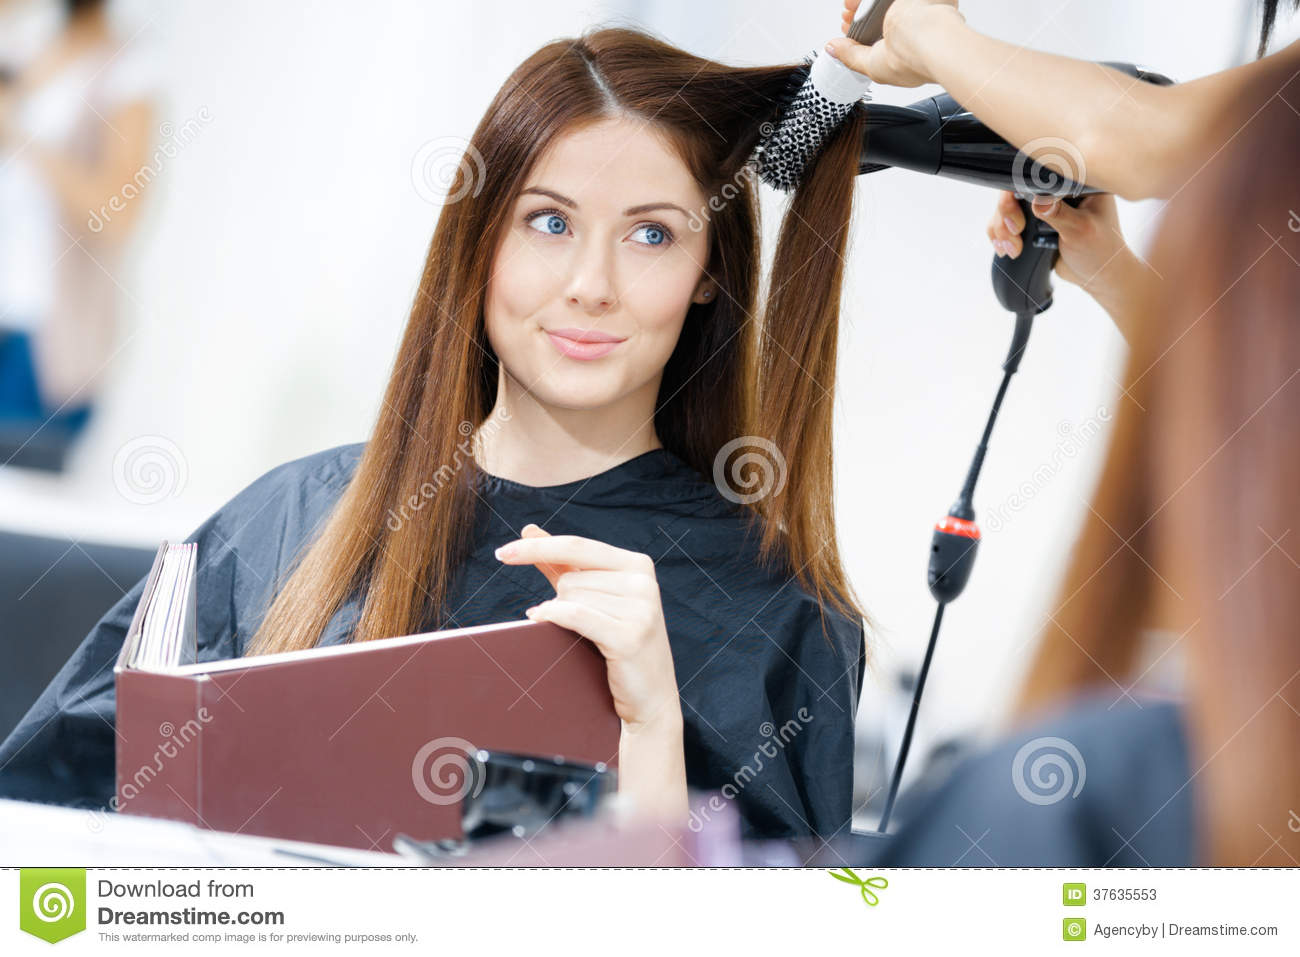 Reflection Of Hairdresser Doing Hairdo For Woman Stock Photos Image 37635553